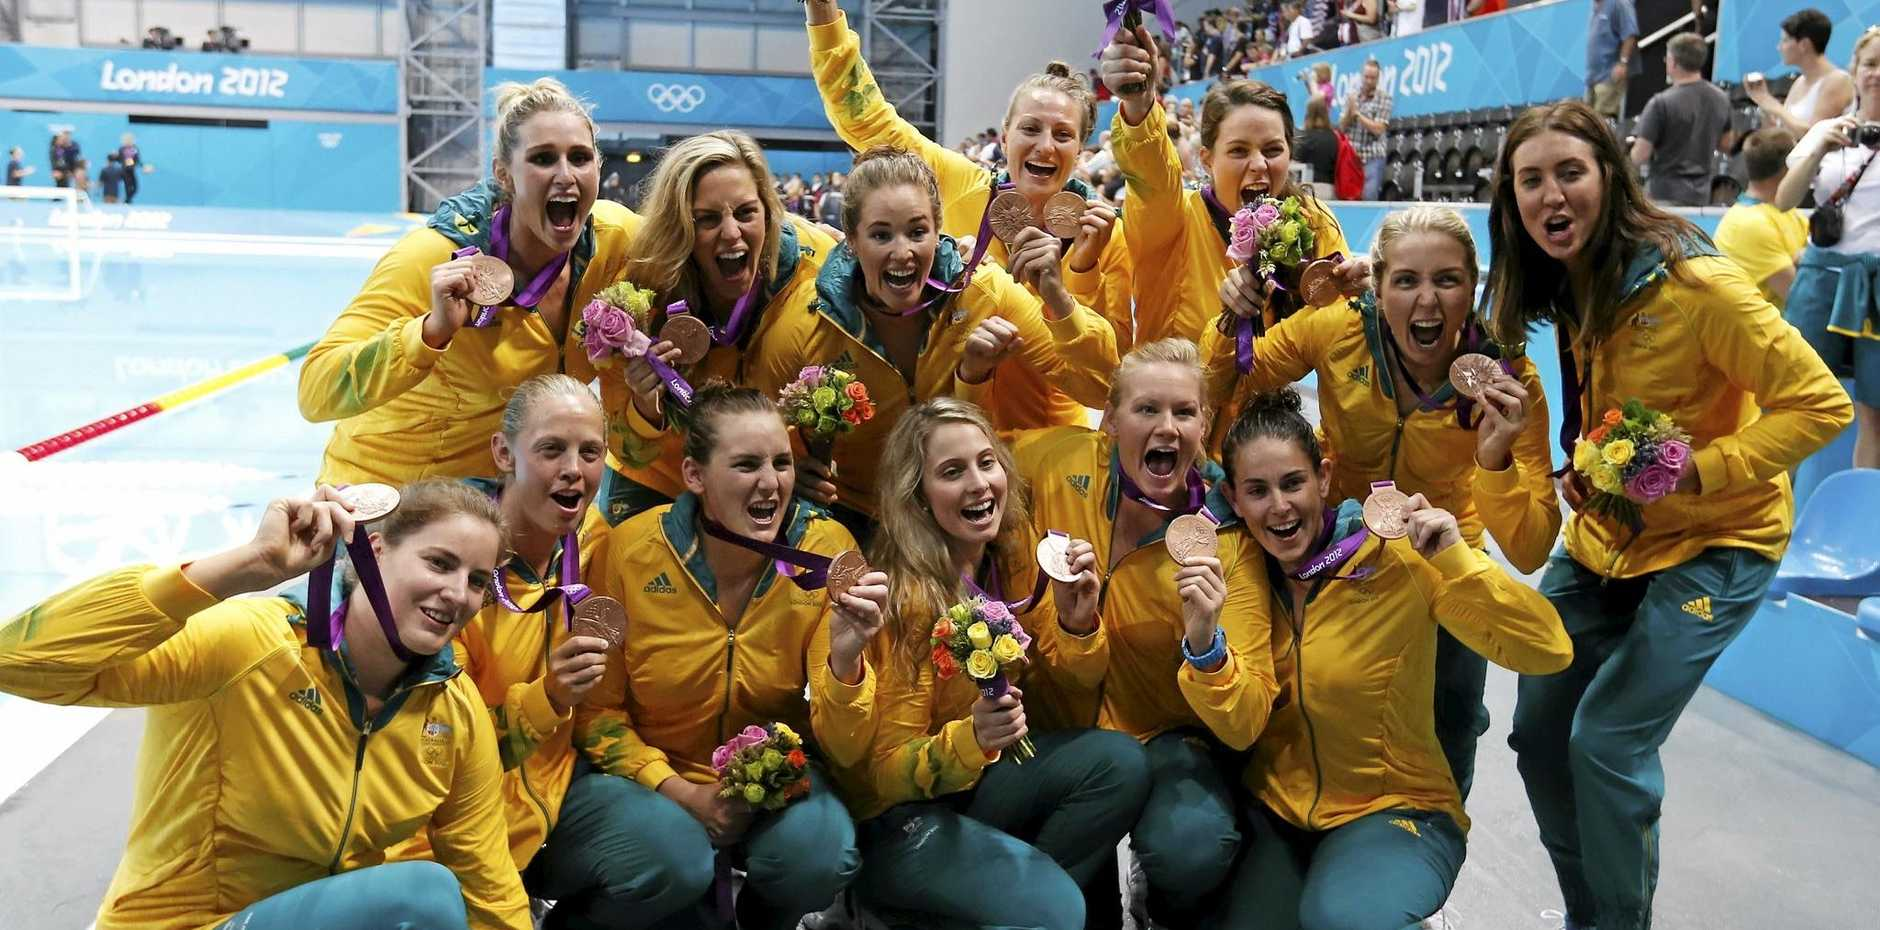 FLASHBACK: Members of the Australian women's water polo team pose for the camera with their bronze medals following the medal ceremony at the 2012 London Olympics.